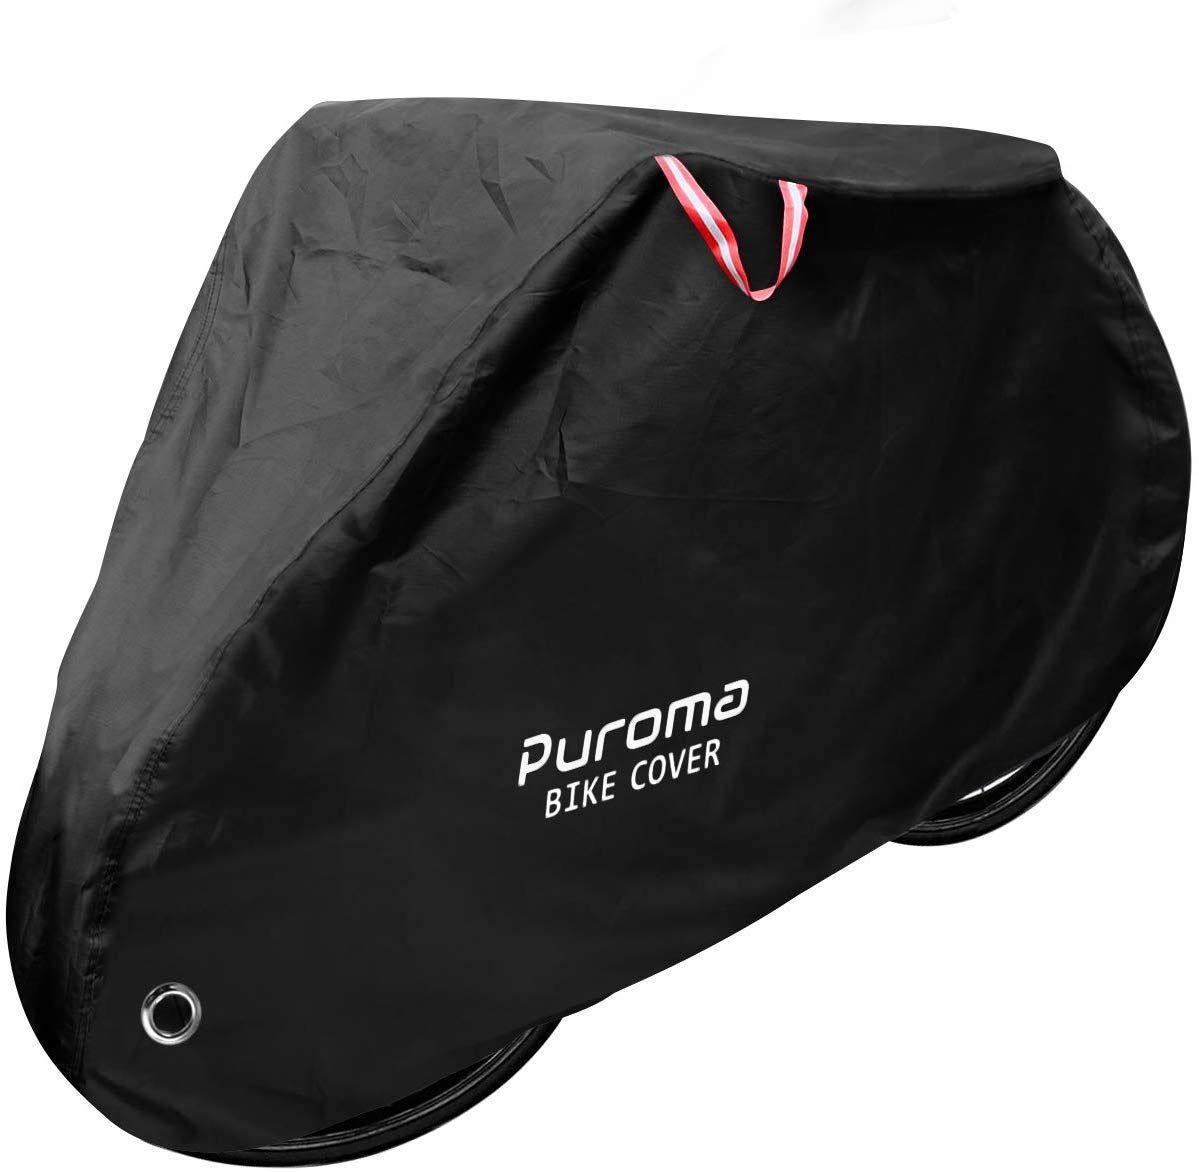 Top 10 Best Bike Covers Review In 2020 In 2020 Bike Cover